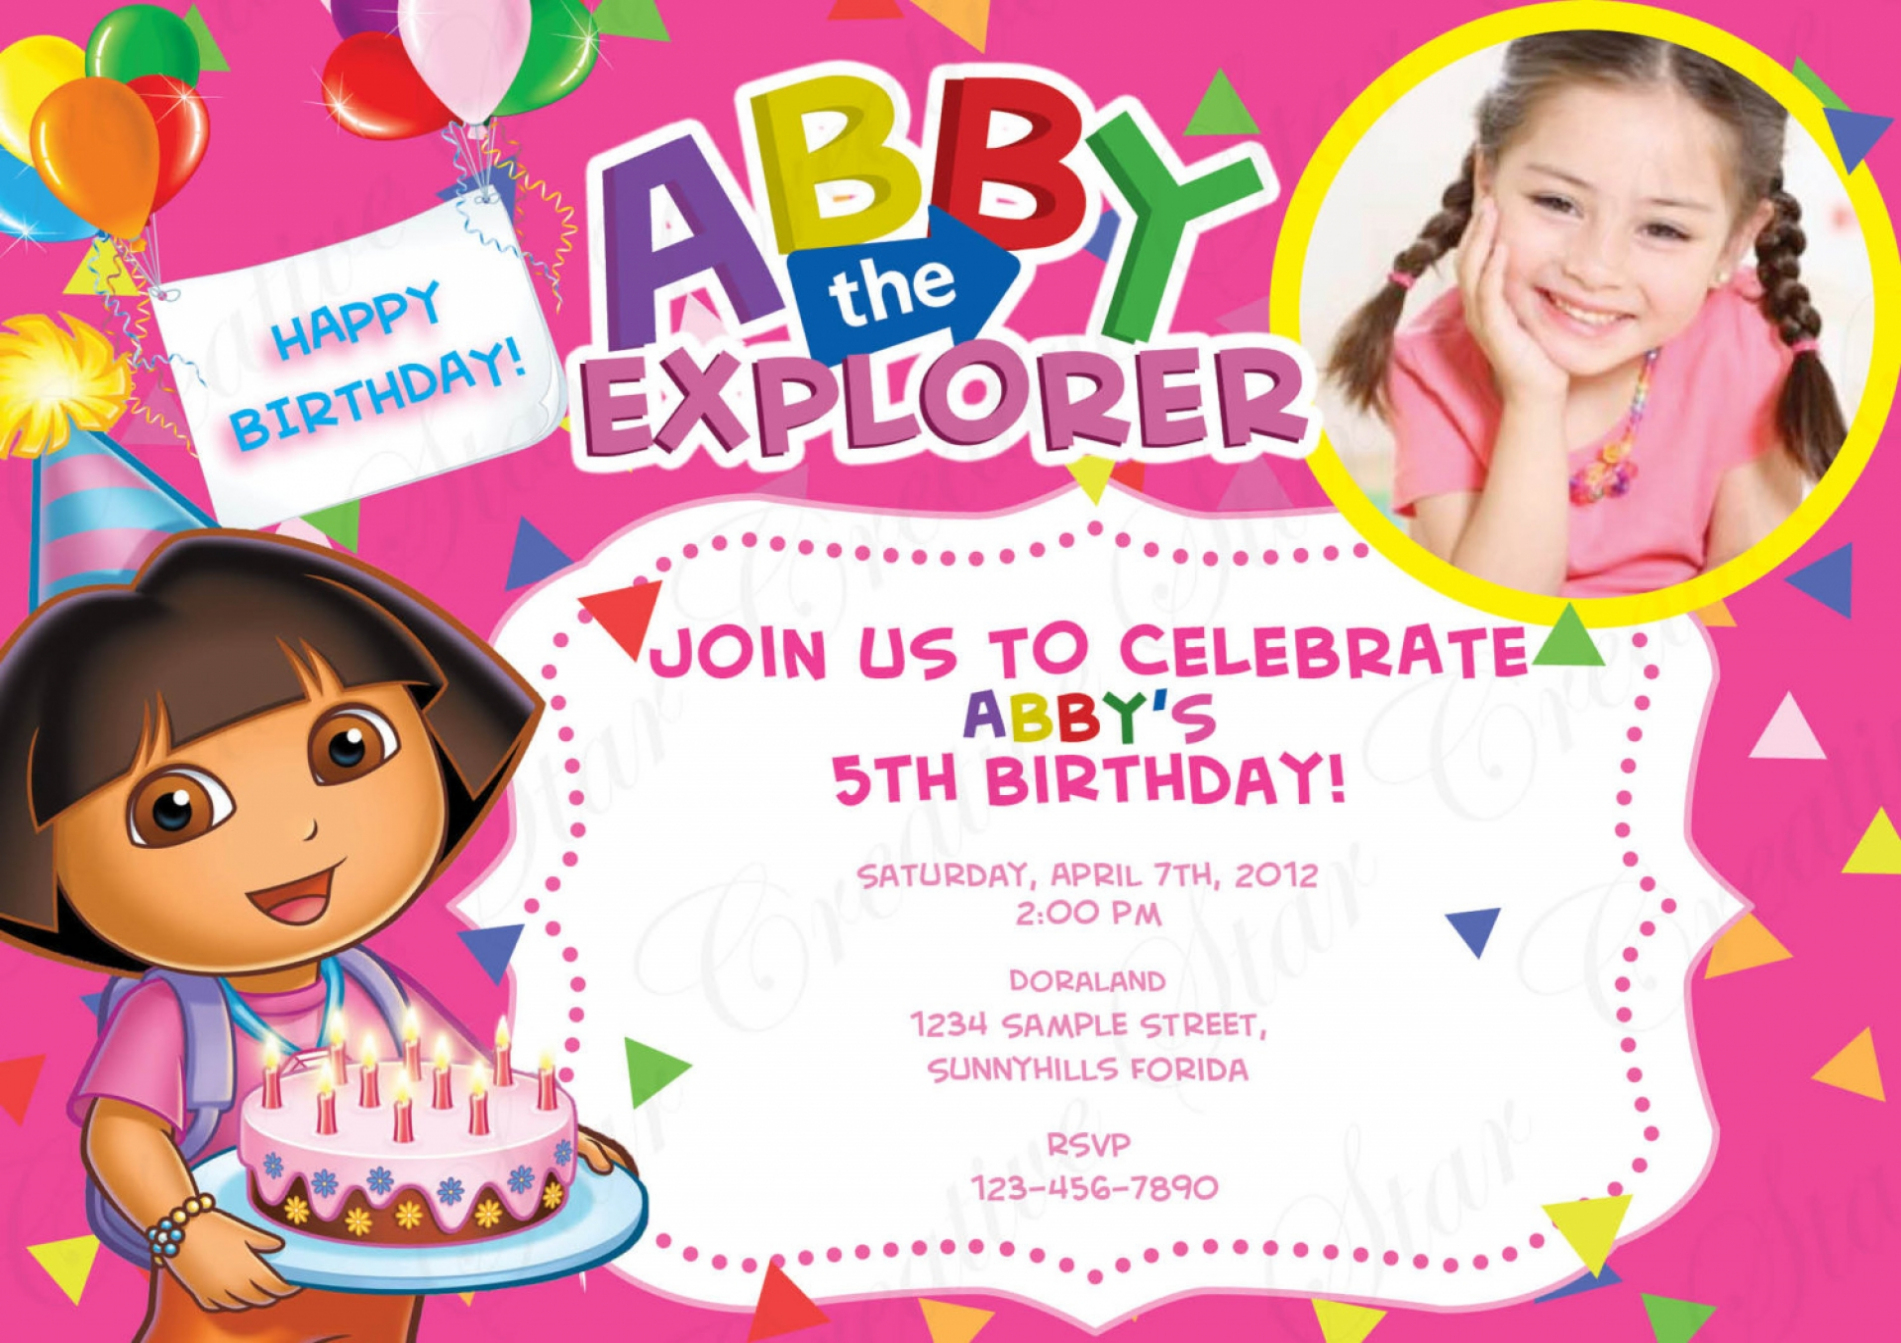 birthday invitation card design online free ; tips-easy-to-custom-birthday-invitations-ideas-invitations-card-design-birthday-invitation-cards-online-free